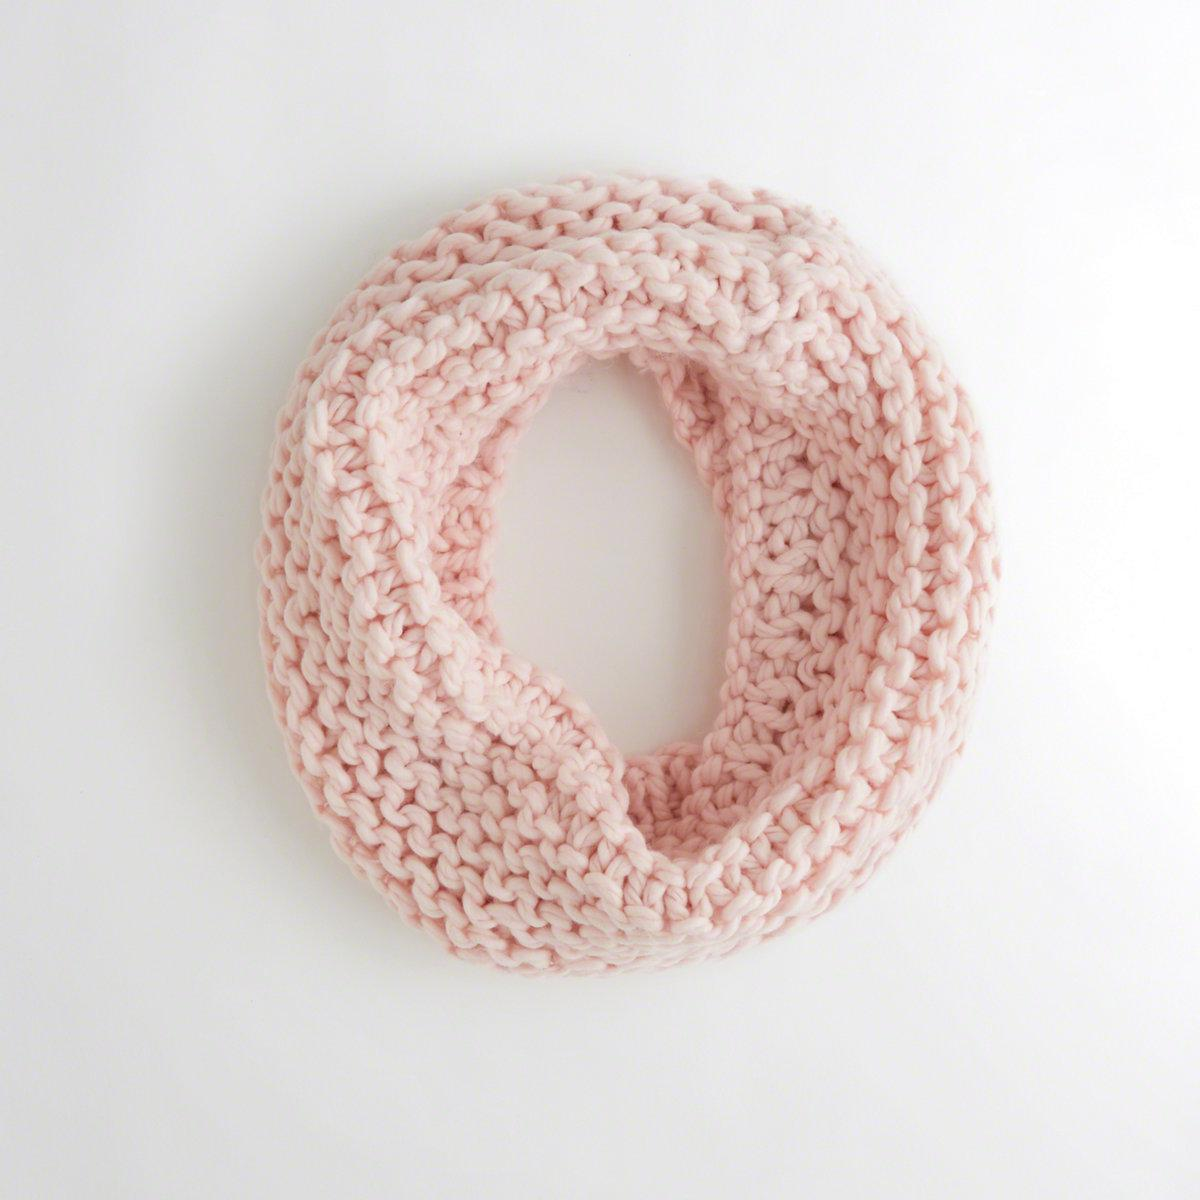 Lyst - Hollister Chunky Knit Infinity Scarf in Pink